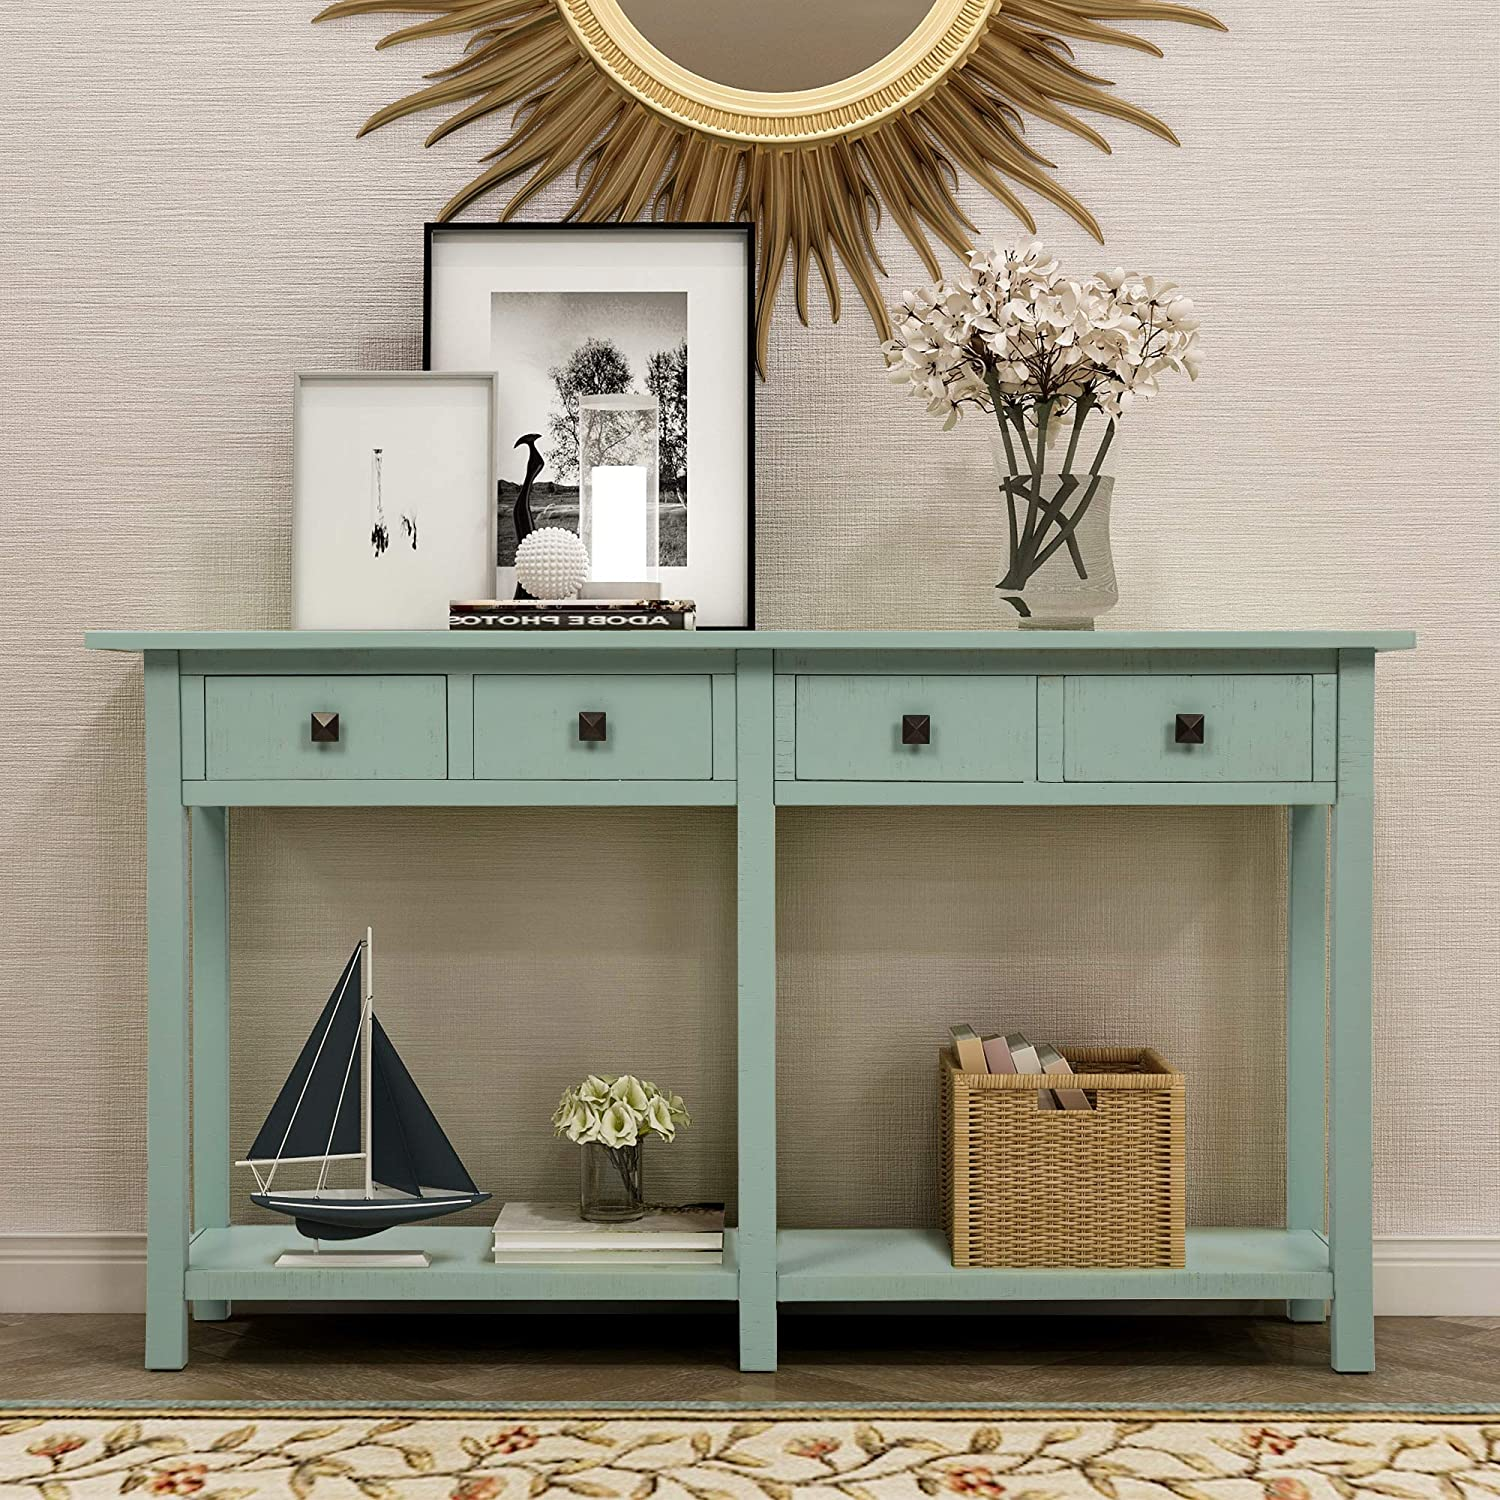 Rustic Brushed Texture Entryway Table with Storage Drawers, WeYoung Console Table with Drawers and Bottom Shelf for Living Room (Tiffany Blue)